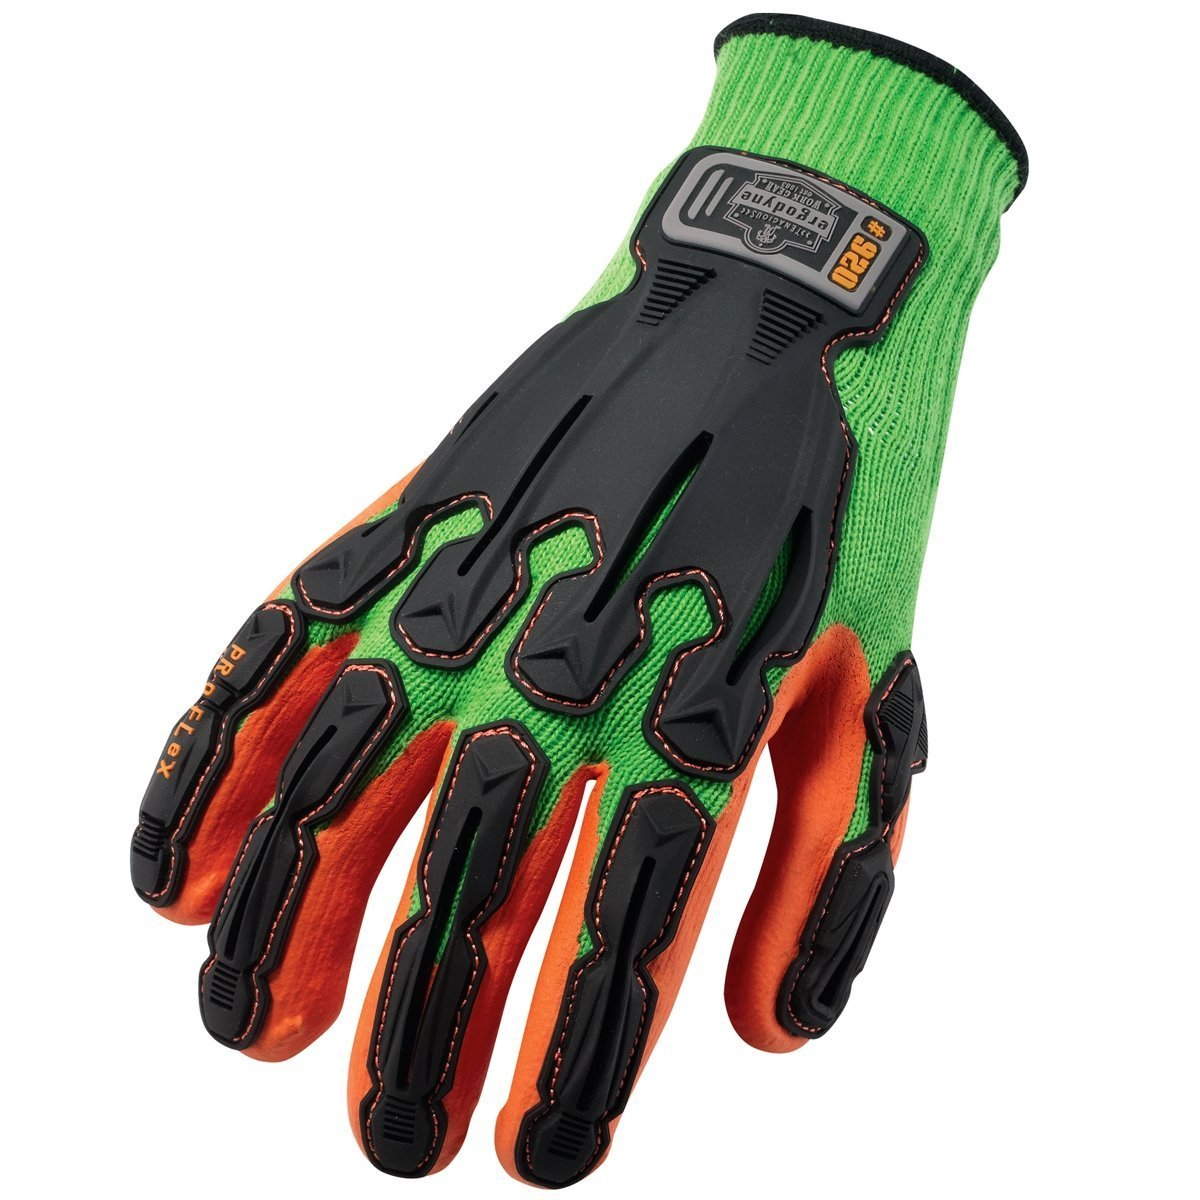 Ergodyne ProFlex 920 Nitrile-Dipped Impact-Reducing Work Gloves, X-Large, Lime